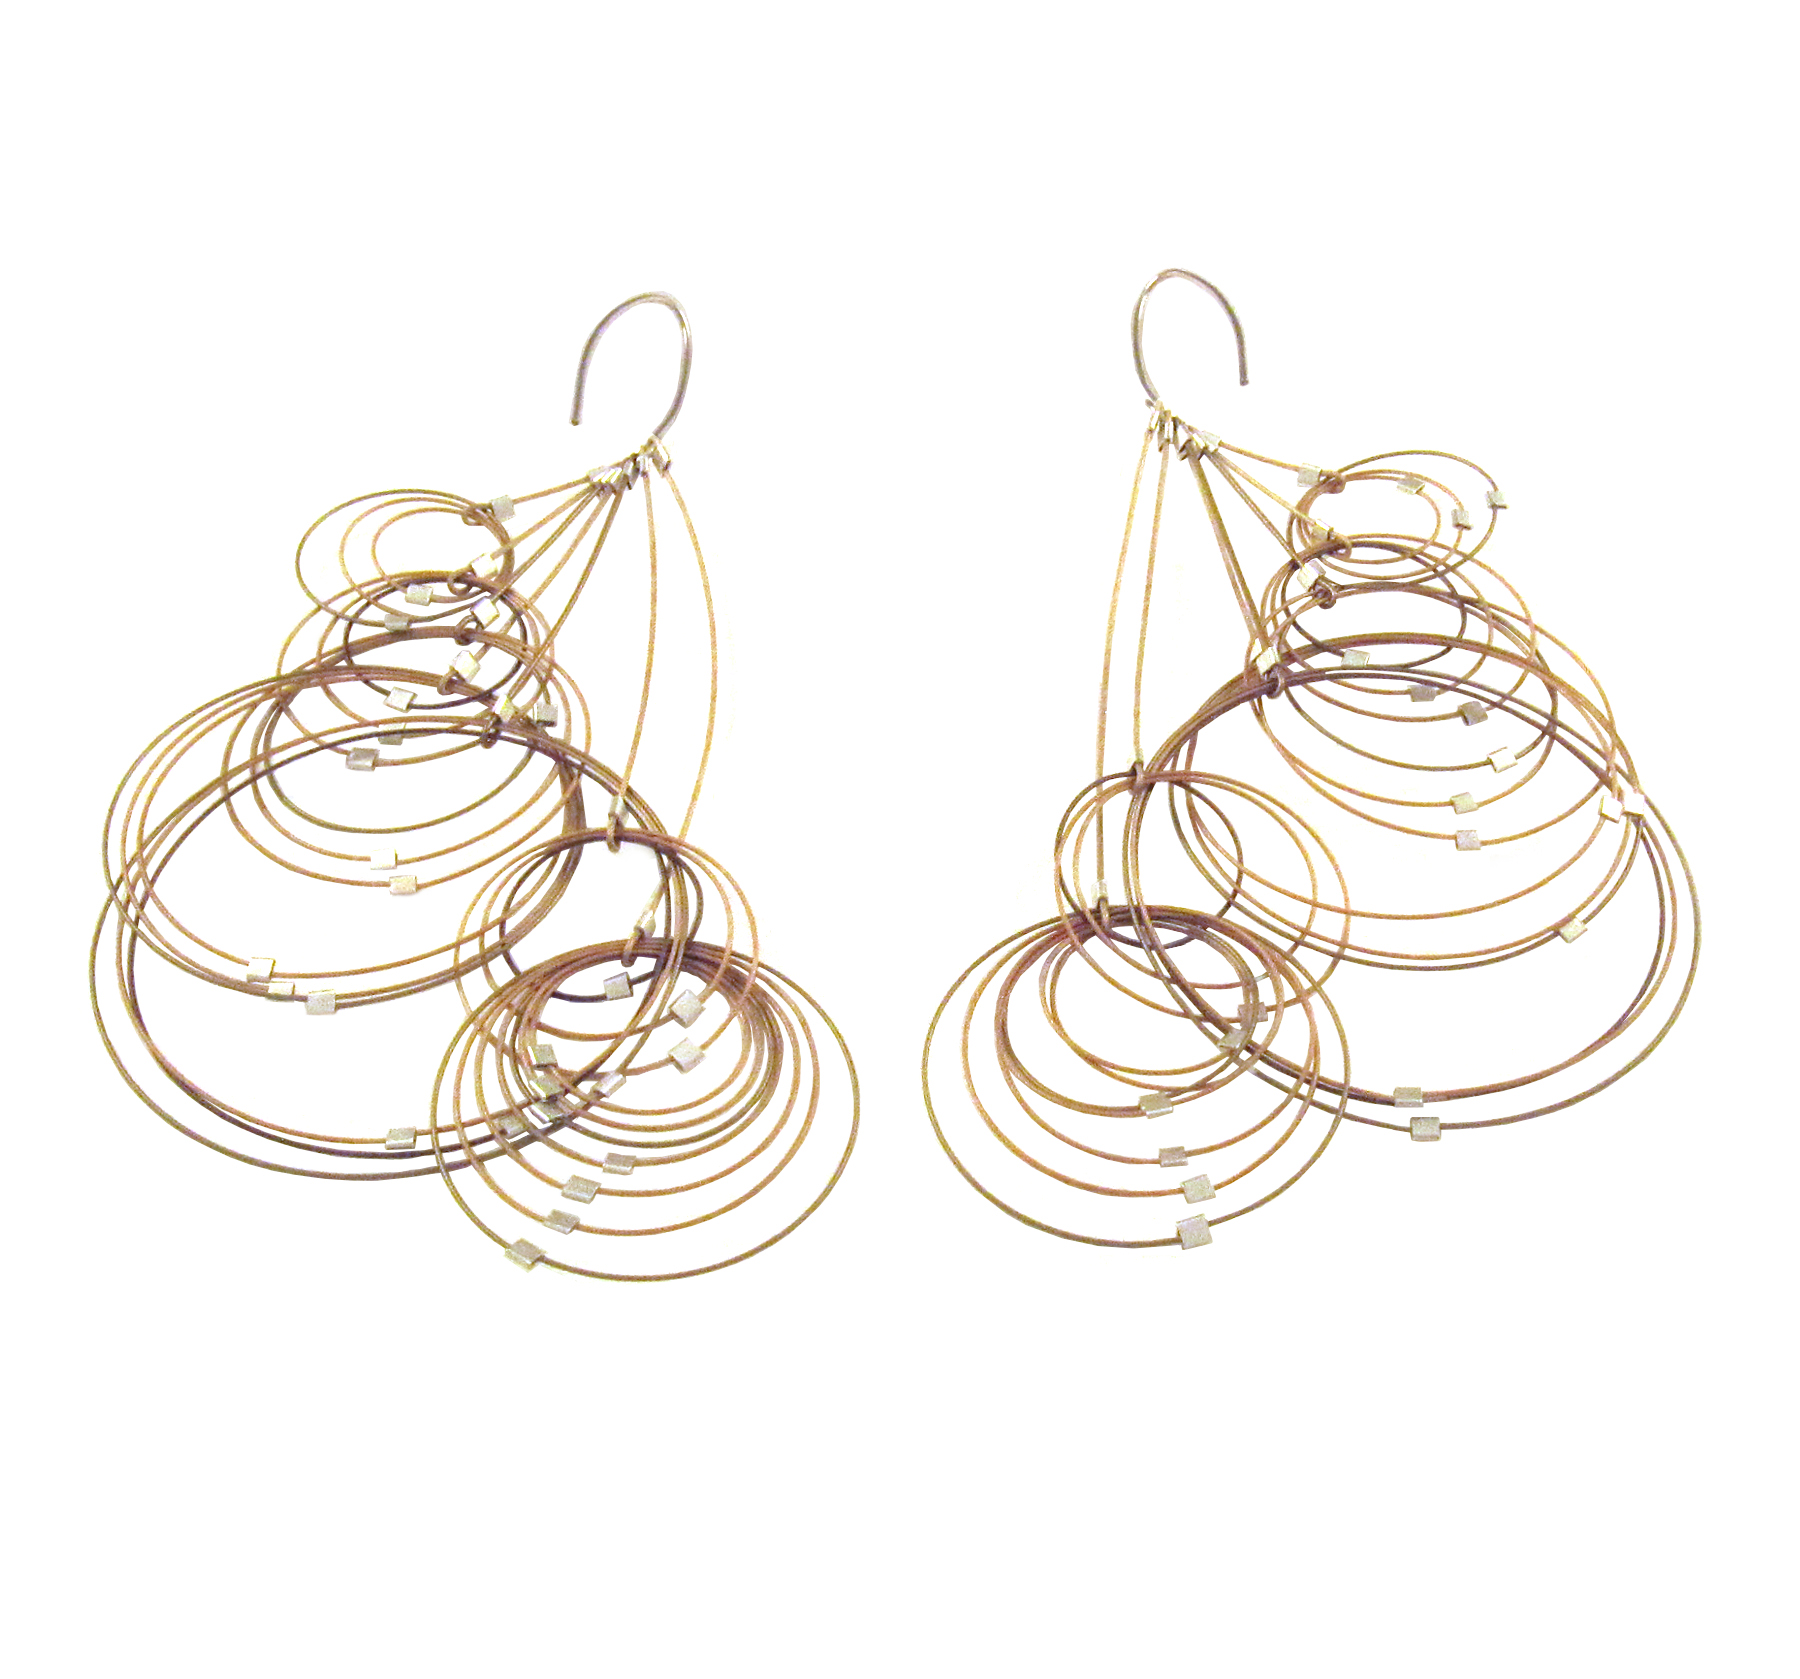 Meghan Patrice Riley, Waft Earrings, Nylon-coated steel, sterling silver